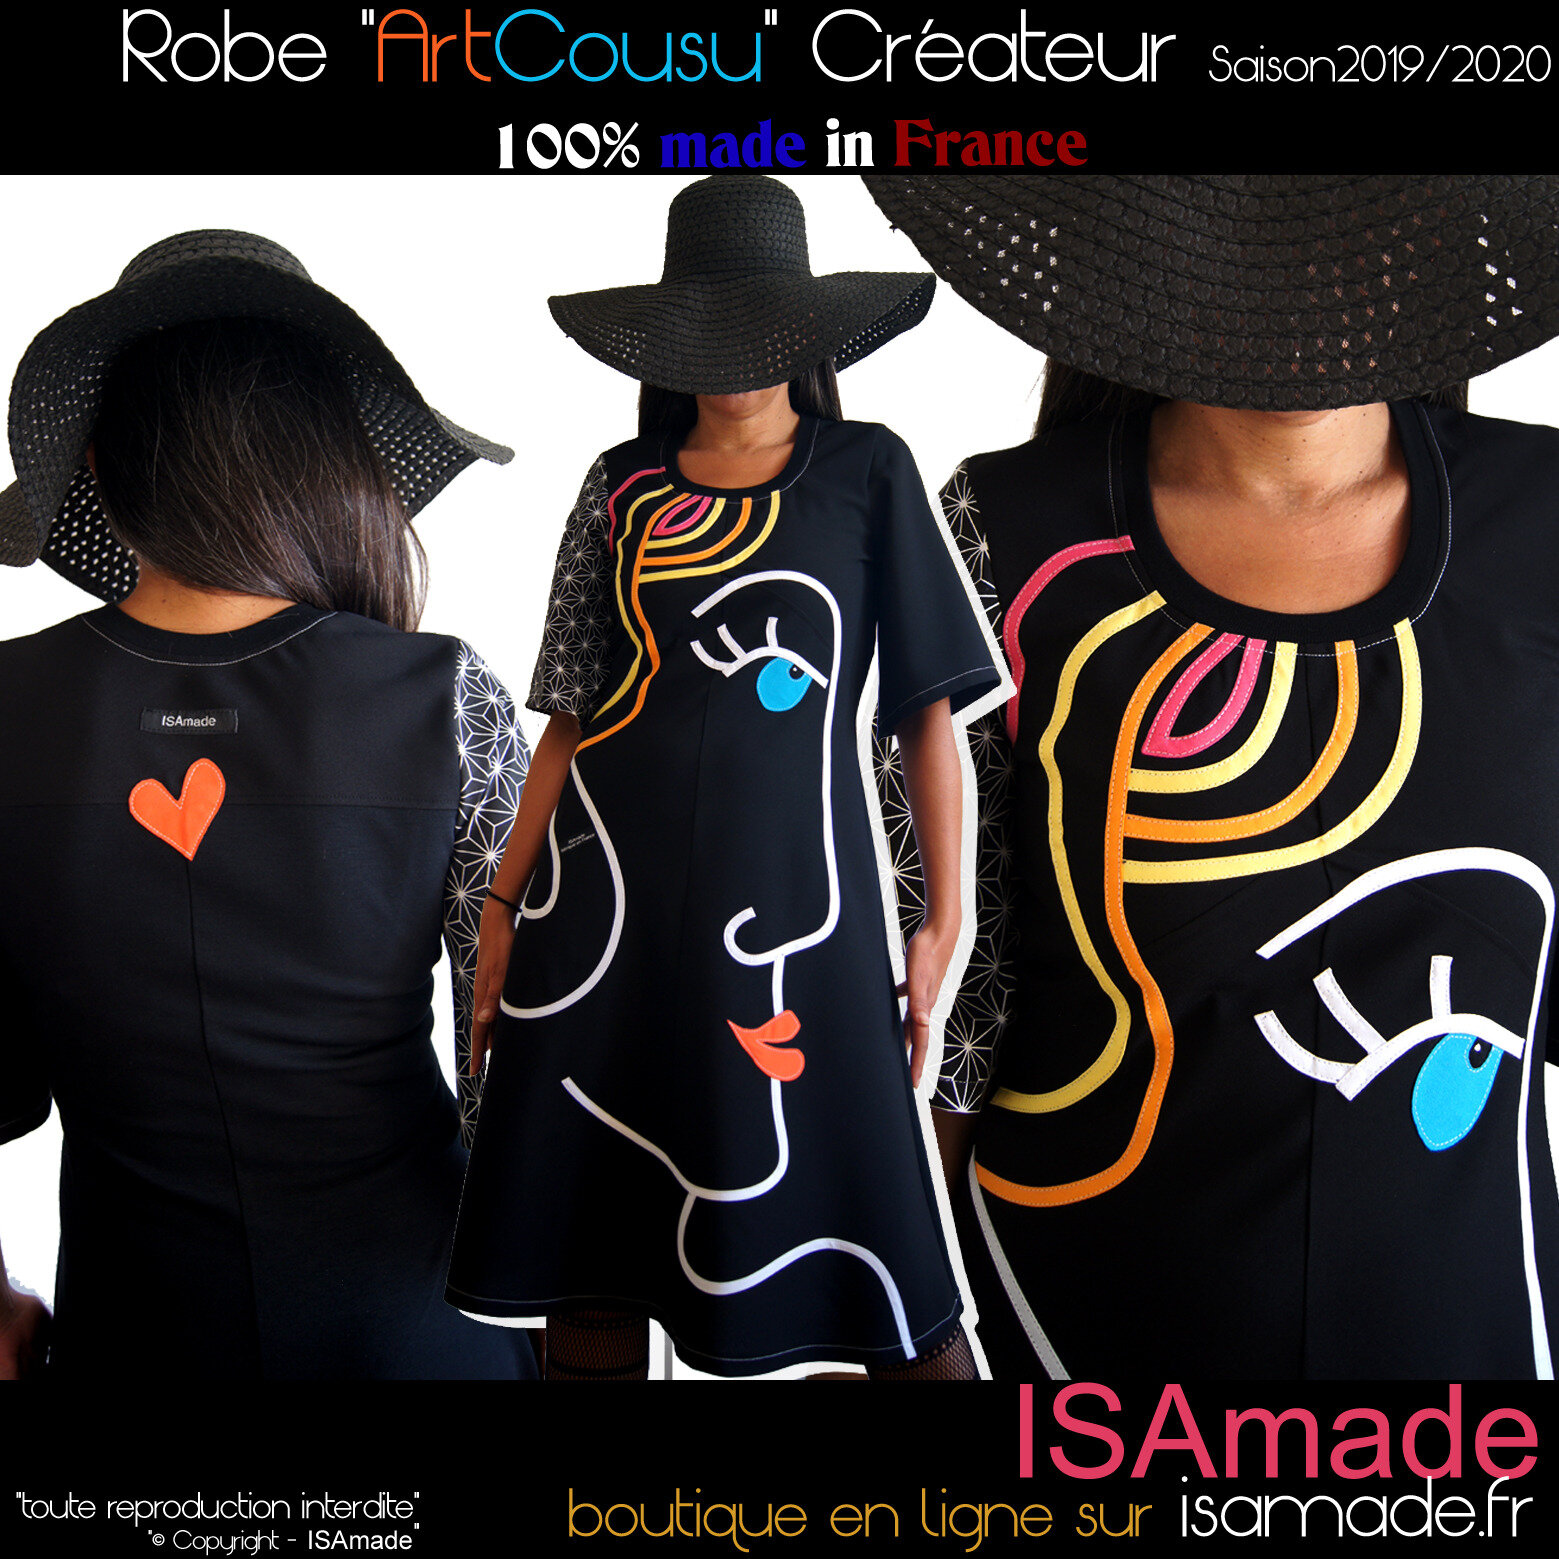 Robe Créateur Arty multicolore noire made in France